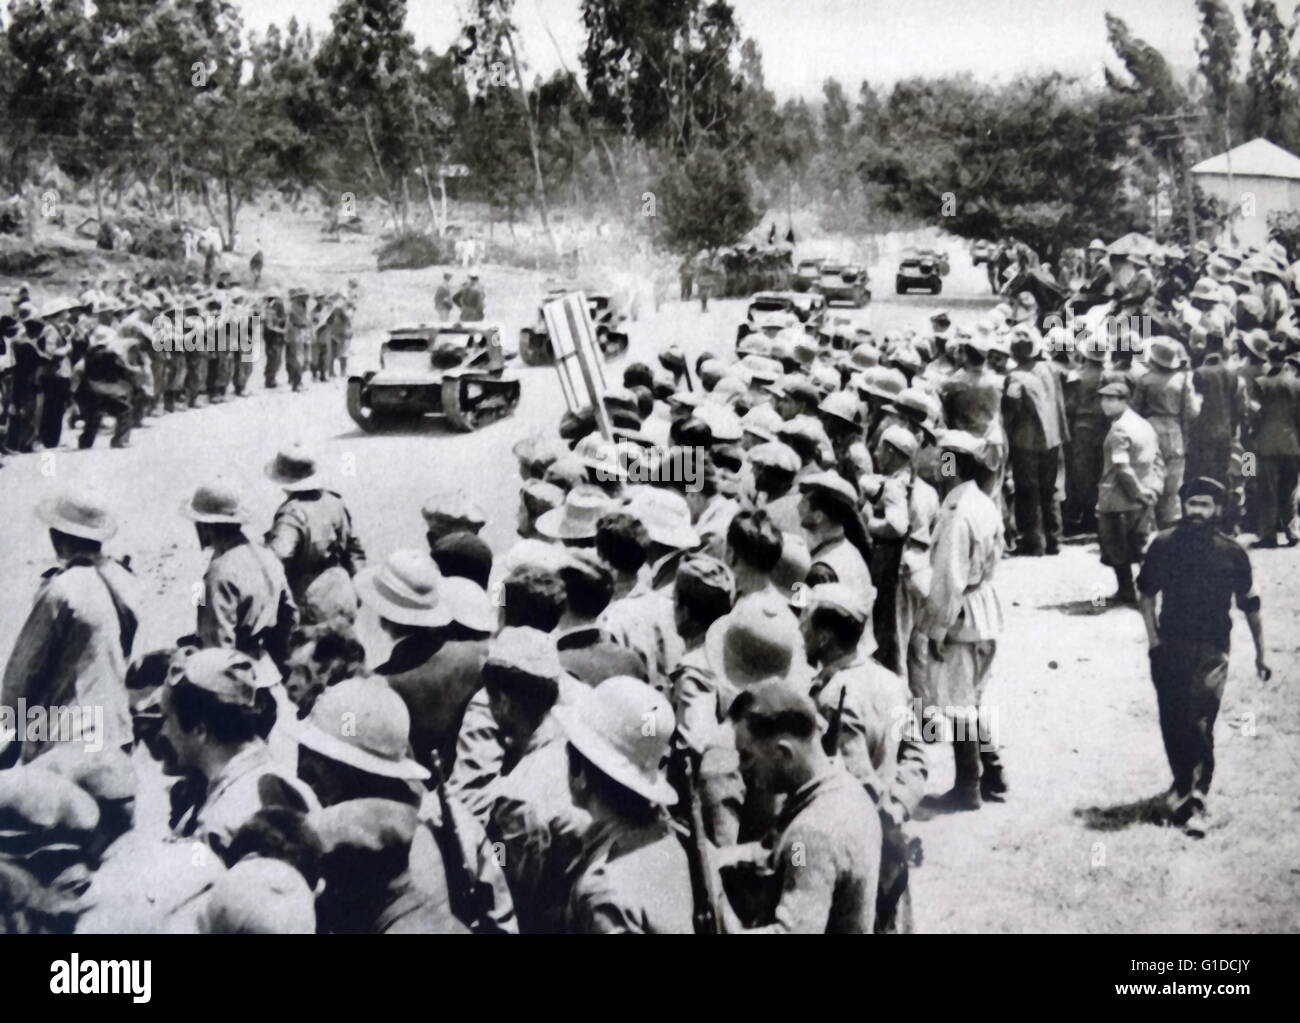 the italian invasion of abyssinia essay The italian invasion of albania (april 7-12, 1939) was a brief military campaign by the kingdom of italy against the albanian kingdom.